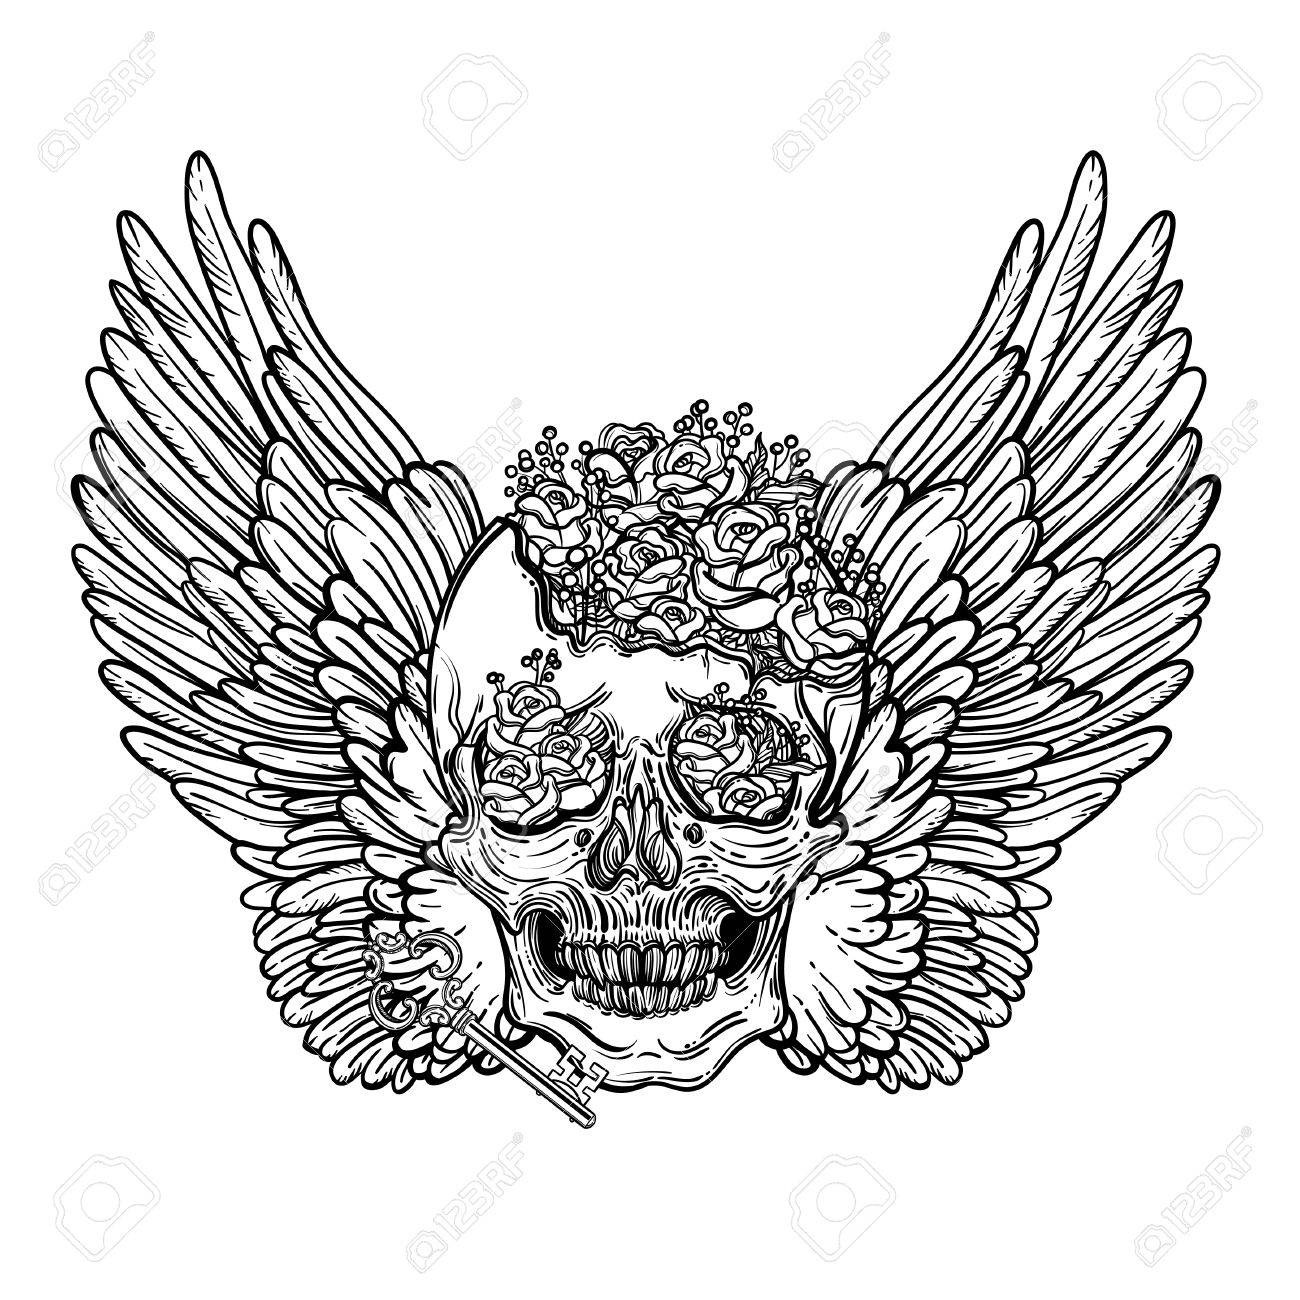 1300x1300 Line Art Illustration Of Angel Wings, Scary Skull And Flowers